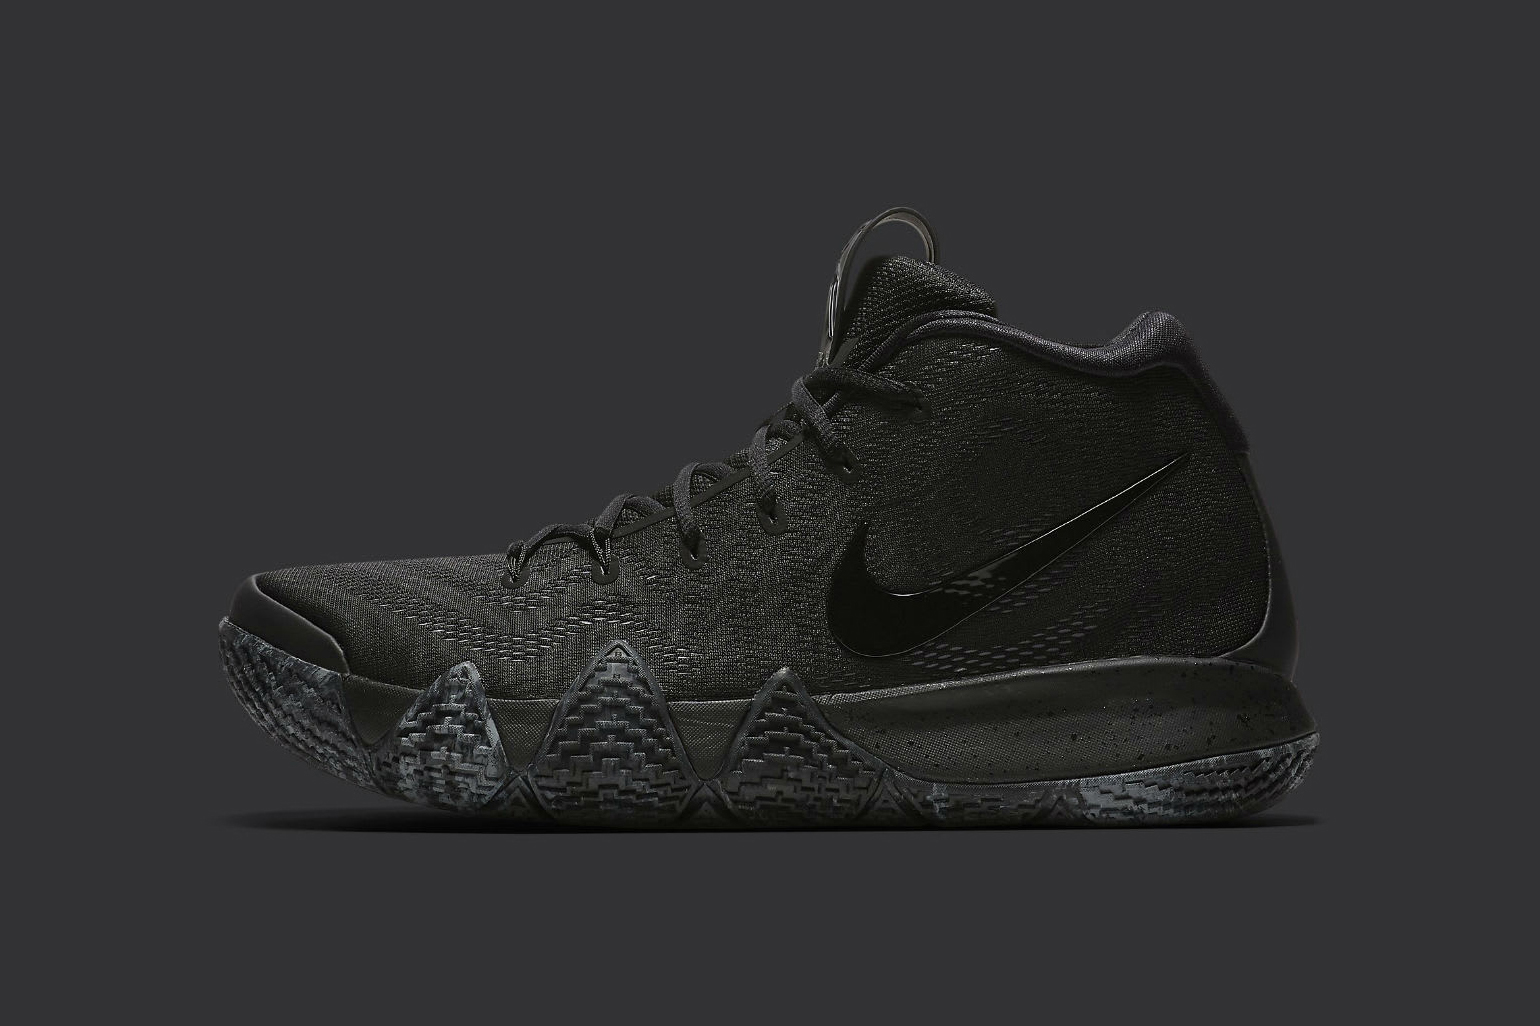 Nike Kyrie 4 Triple Black july 14 2018 release date info drop sneakers shoes footwear irving